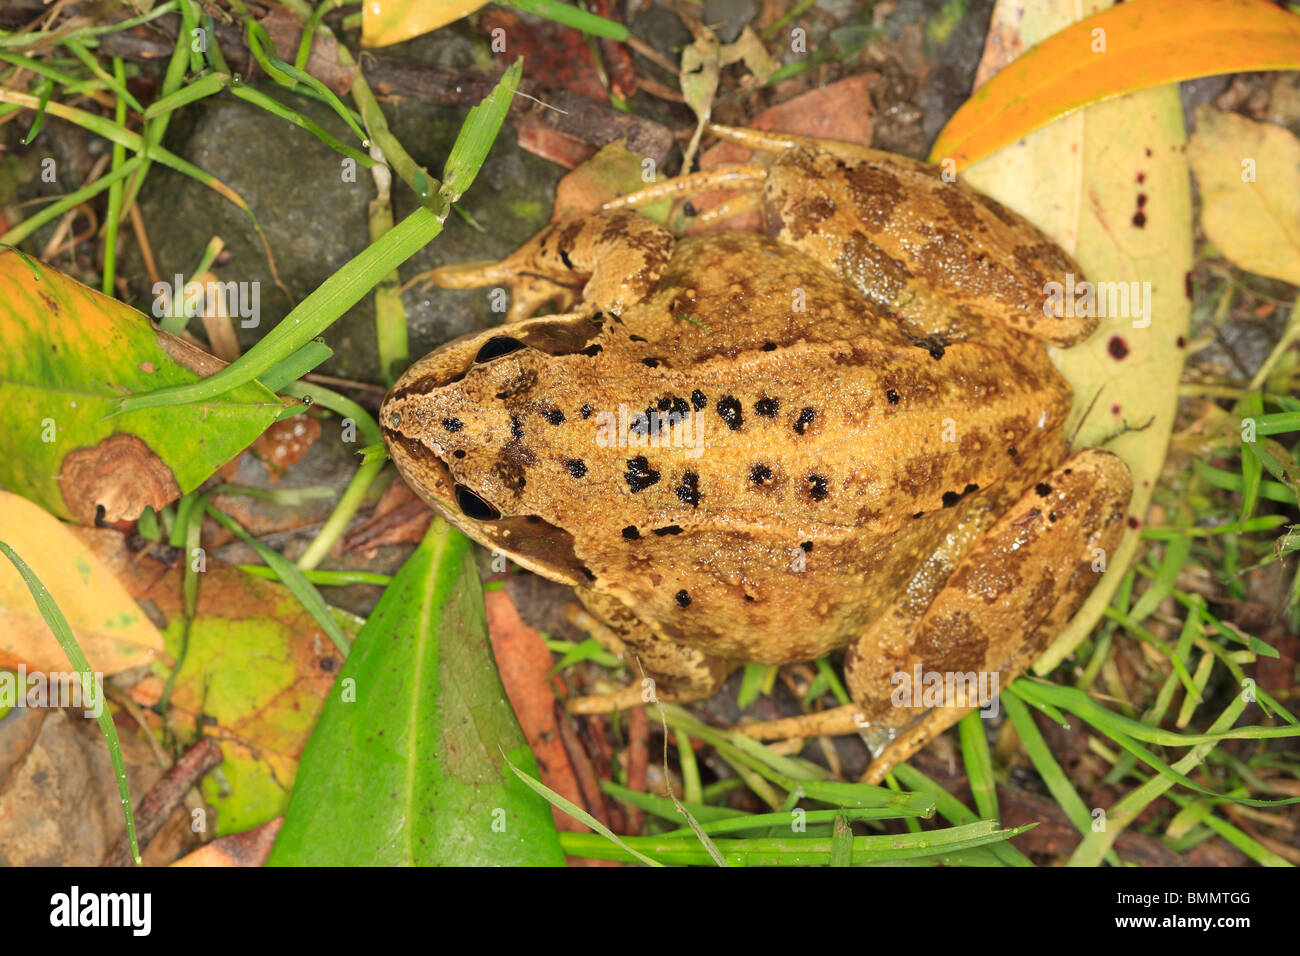 COMMON FROG (Rana temporaria)TOP VIEW - Stock Image